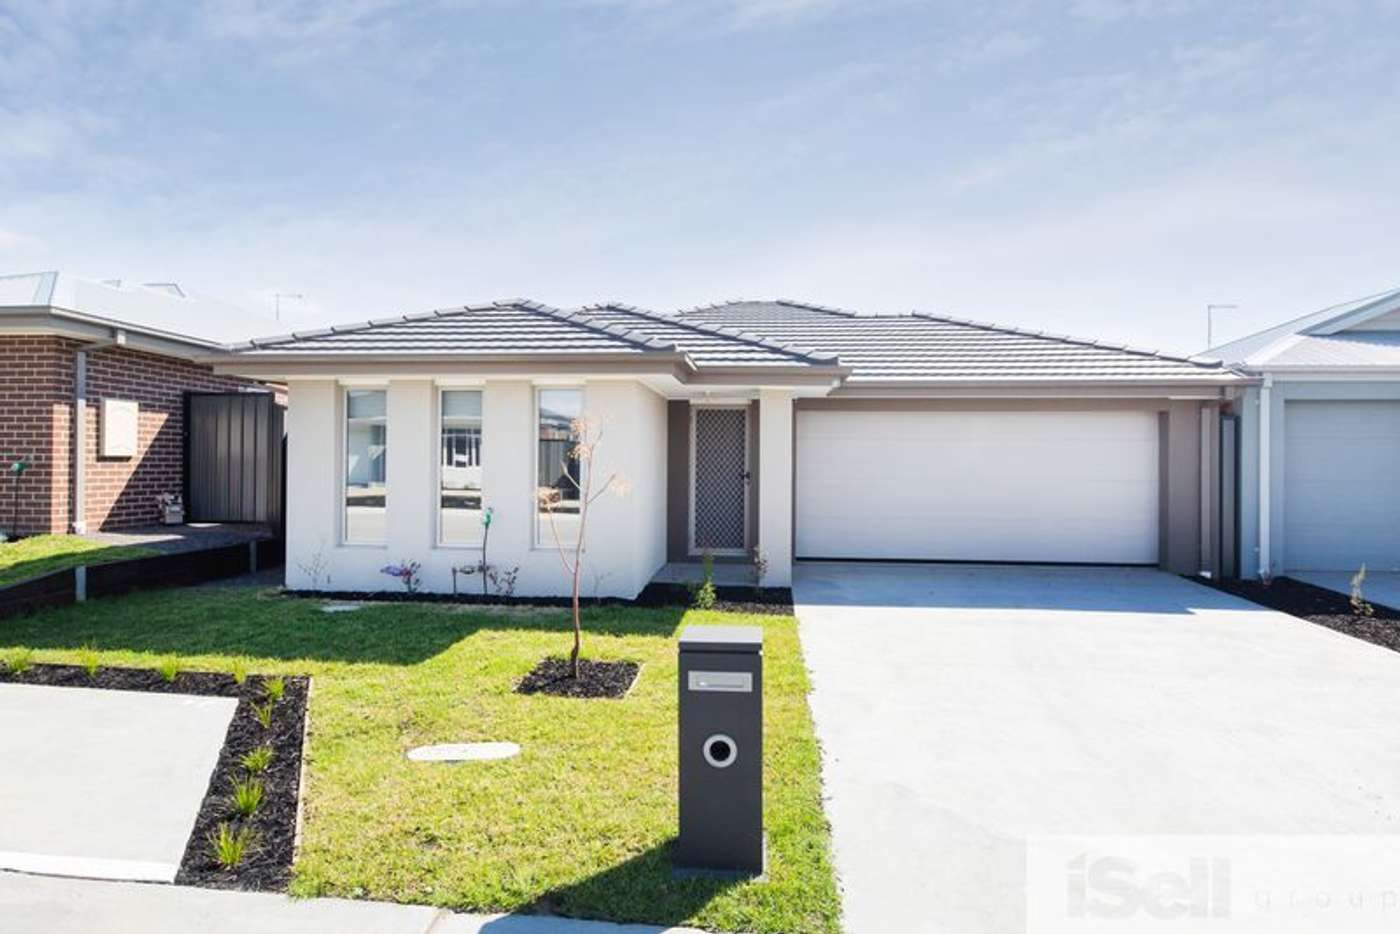 Main view of Homely house listing, 10 Naso Place, Clyde North VIC 3978